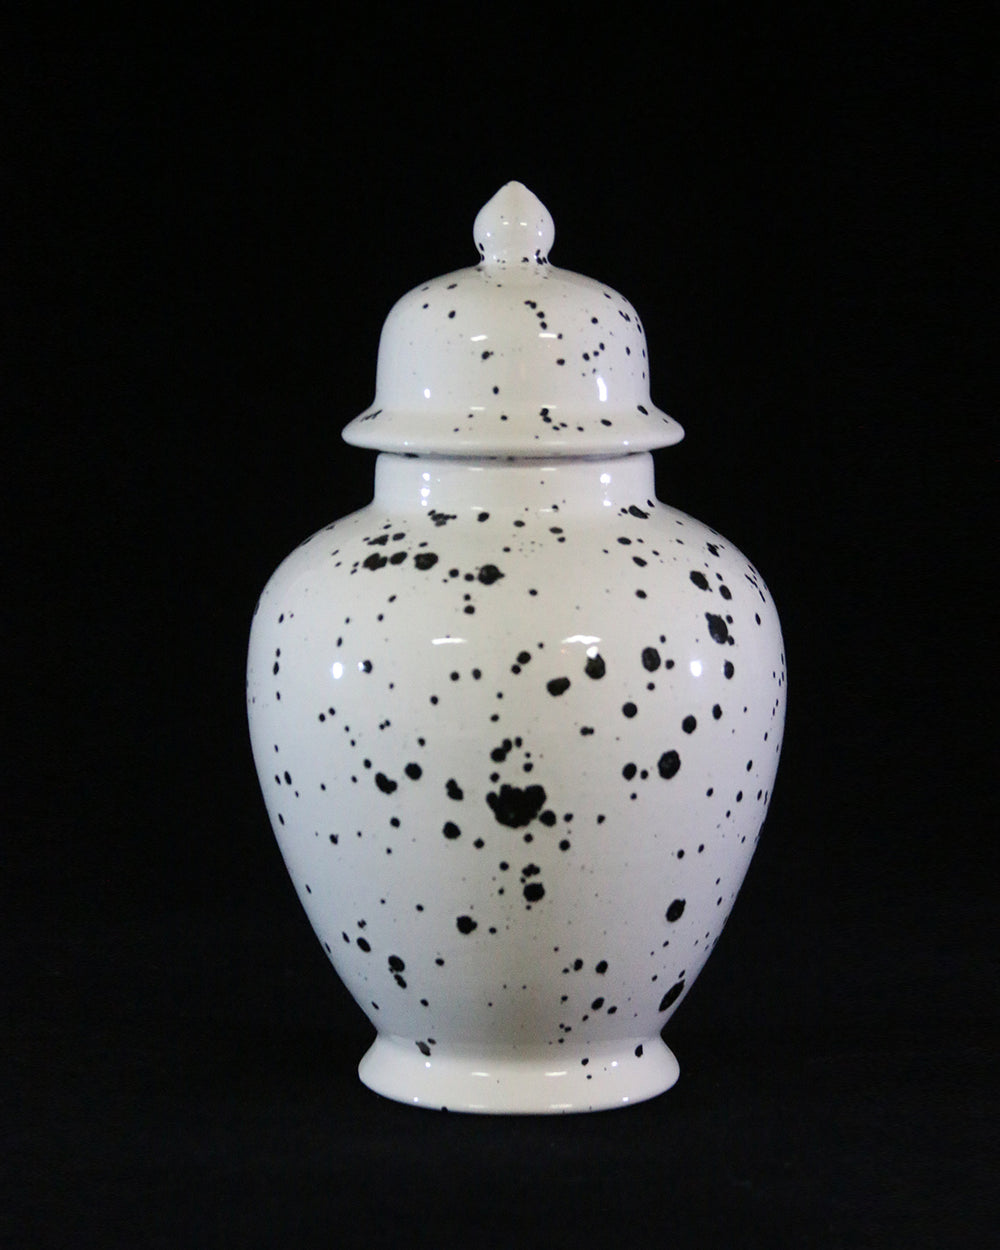 Hancrafted Ceramic Urn - Ink Spots - Large